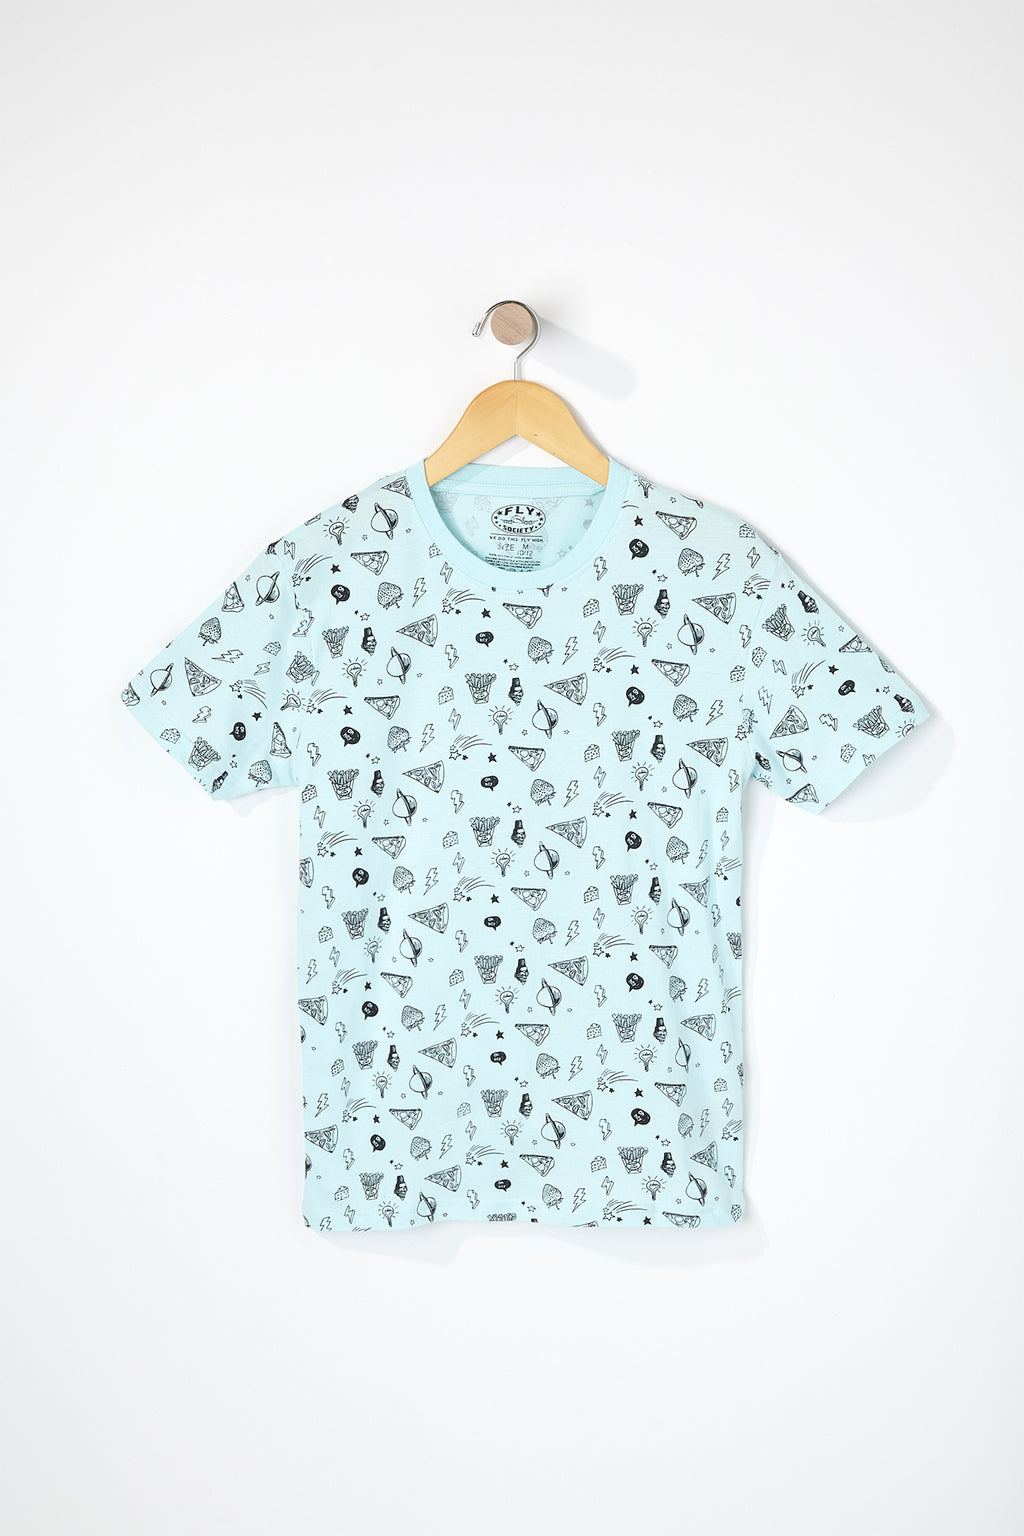 West49 Boys Space Print T-Shirt